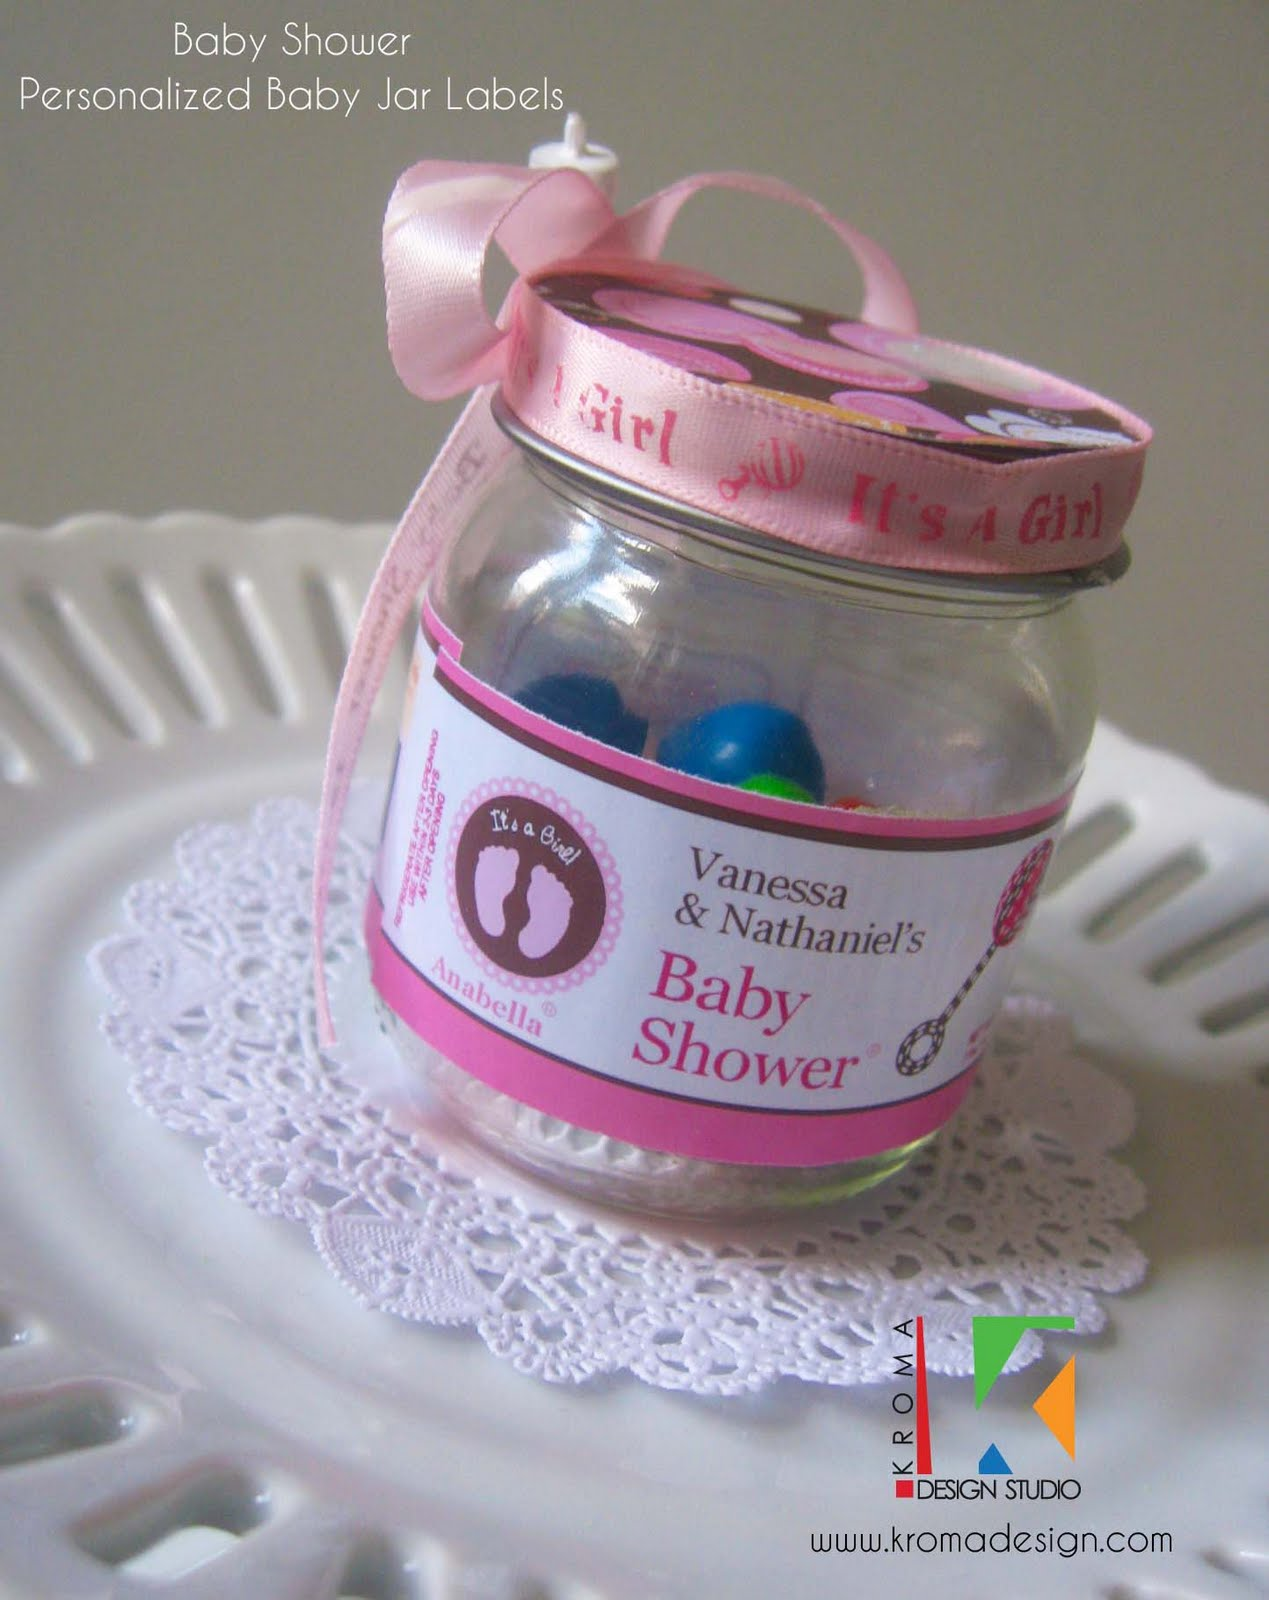 Baby Shower Favors To Make | Best Baby Decoration